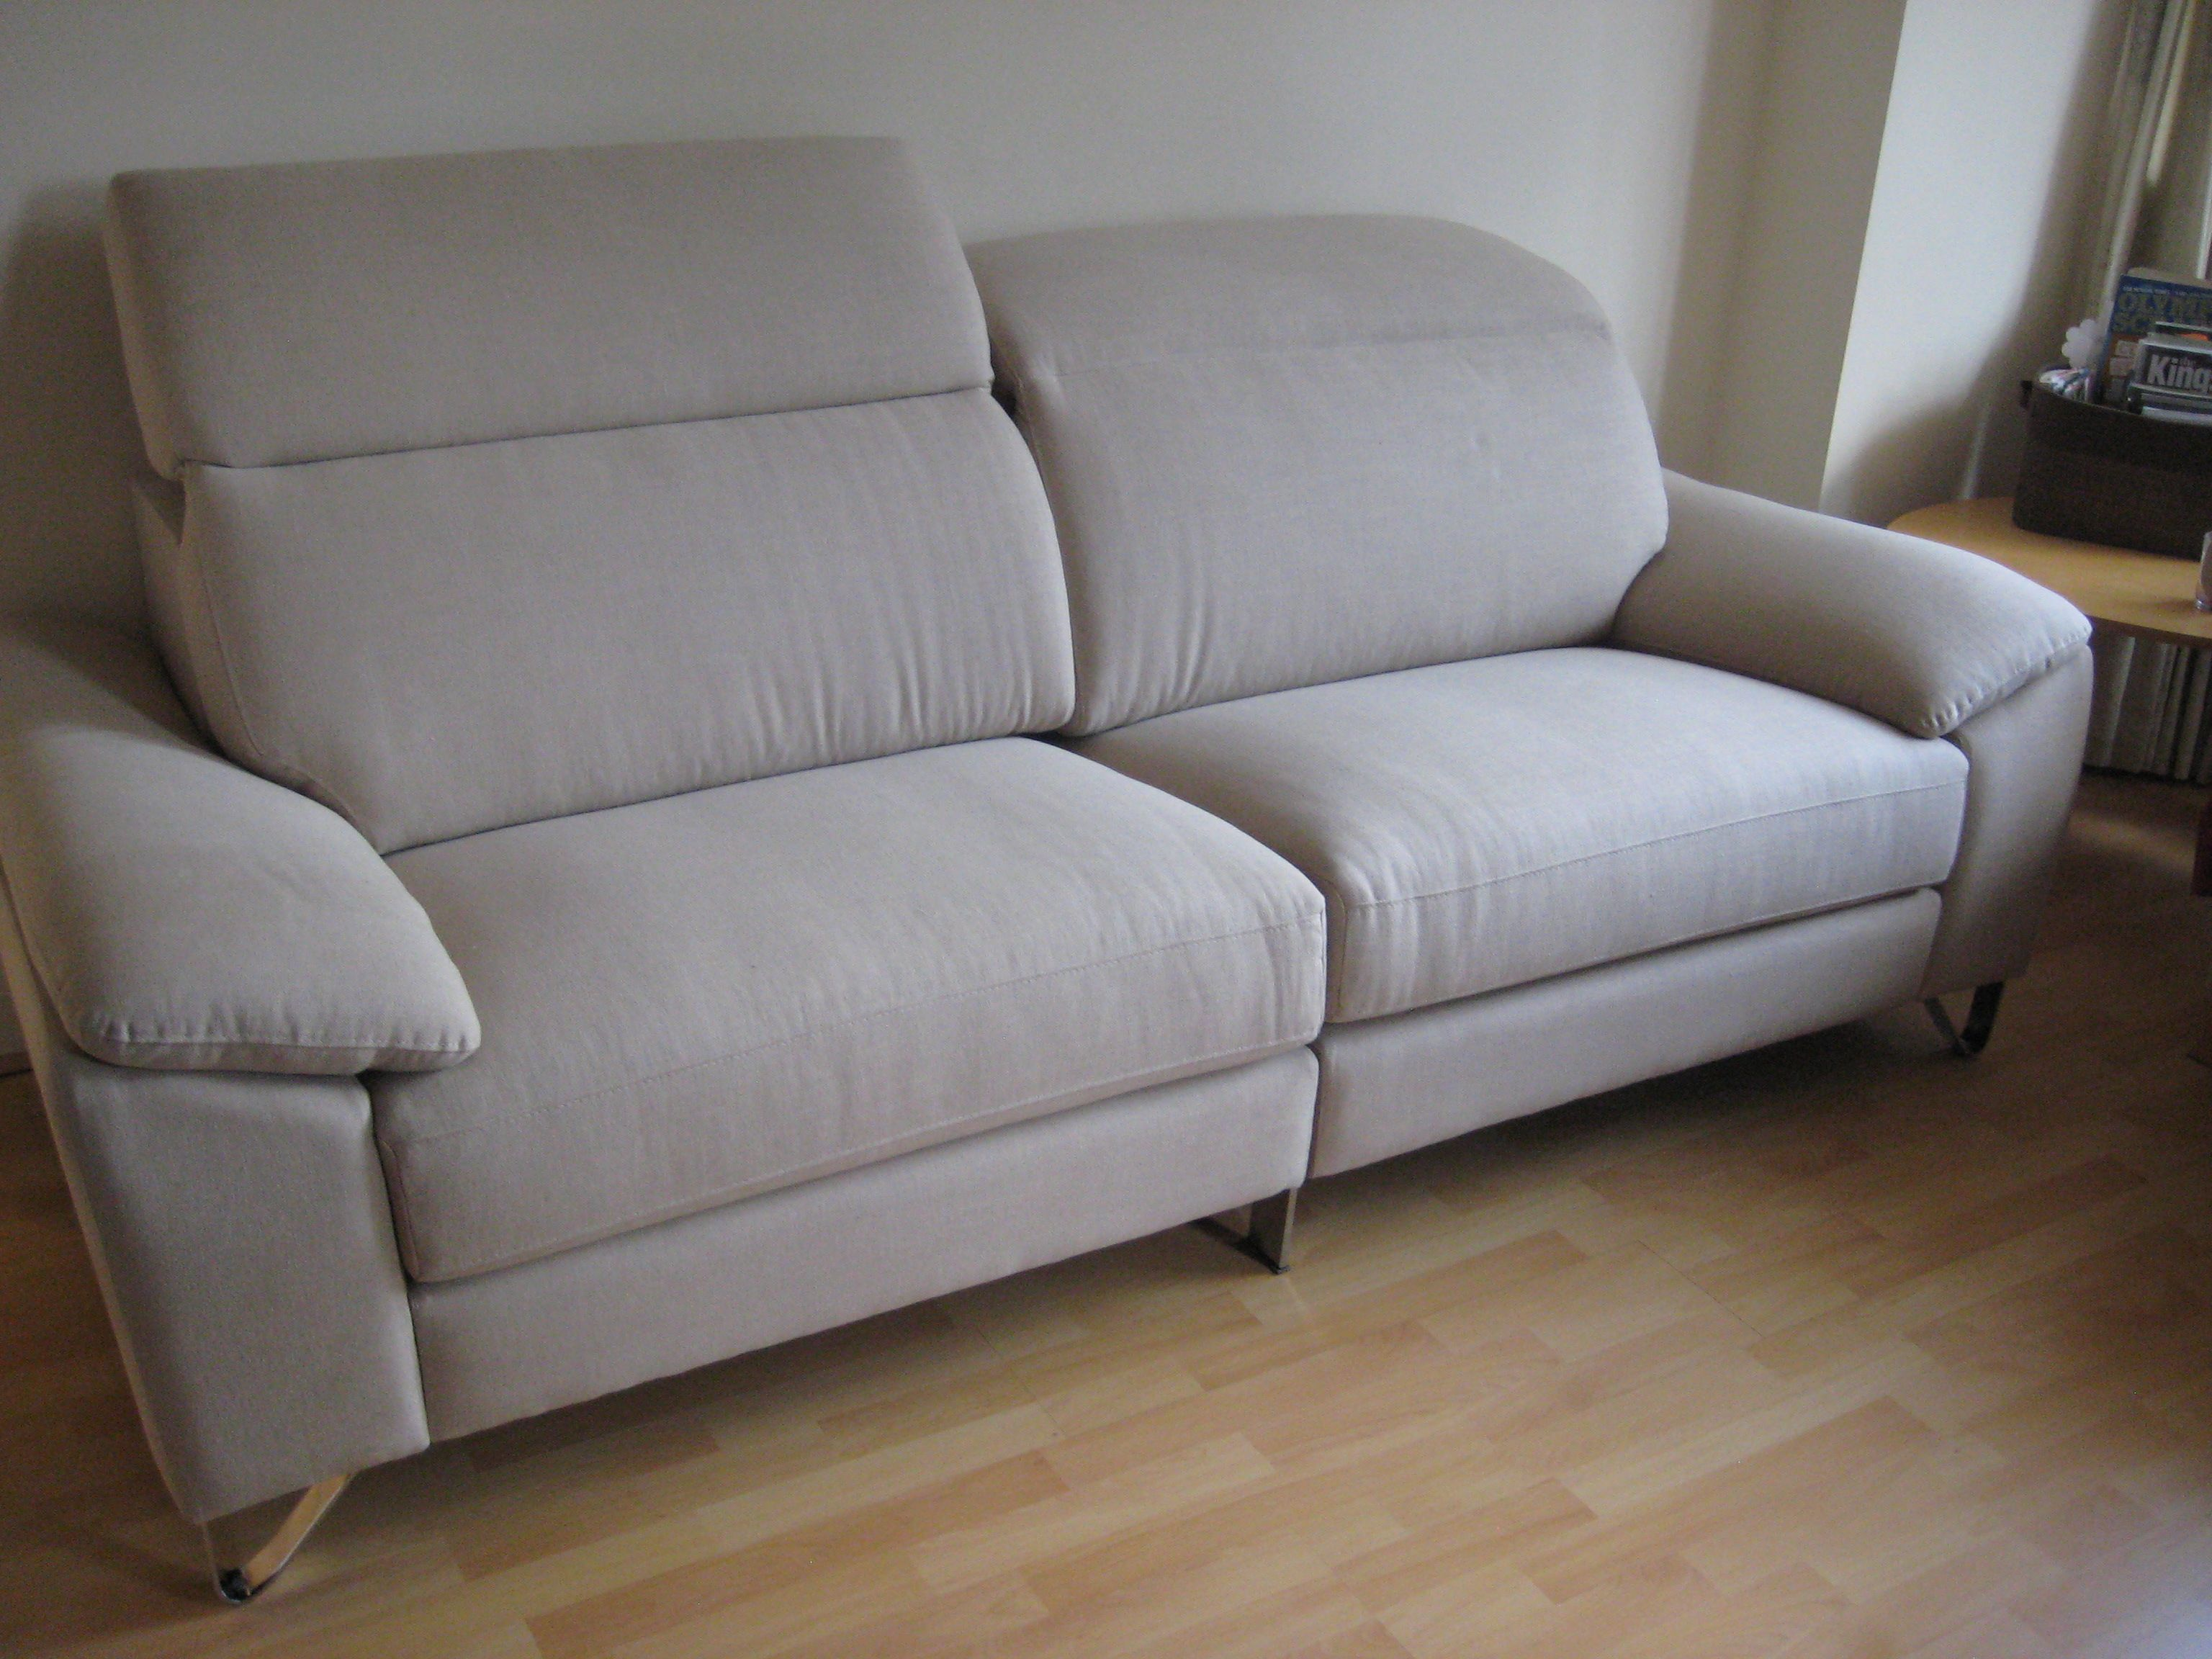 Elfredo Sofa 226 Cm (made Up Of Two 113 Cm Sections With A Left And